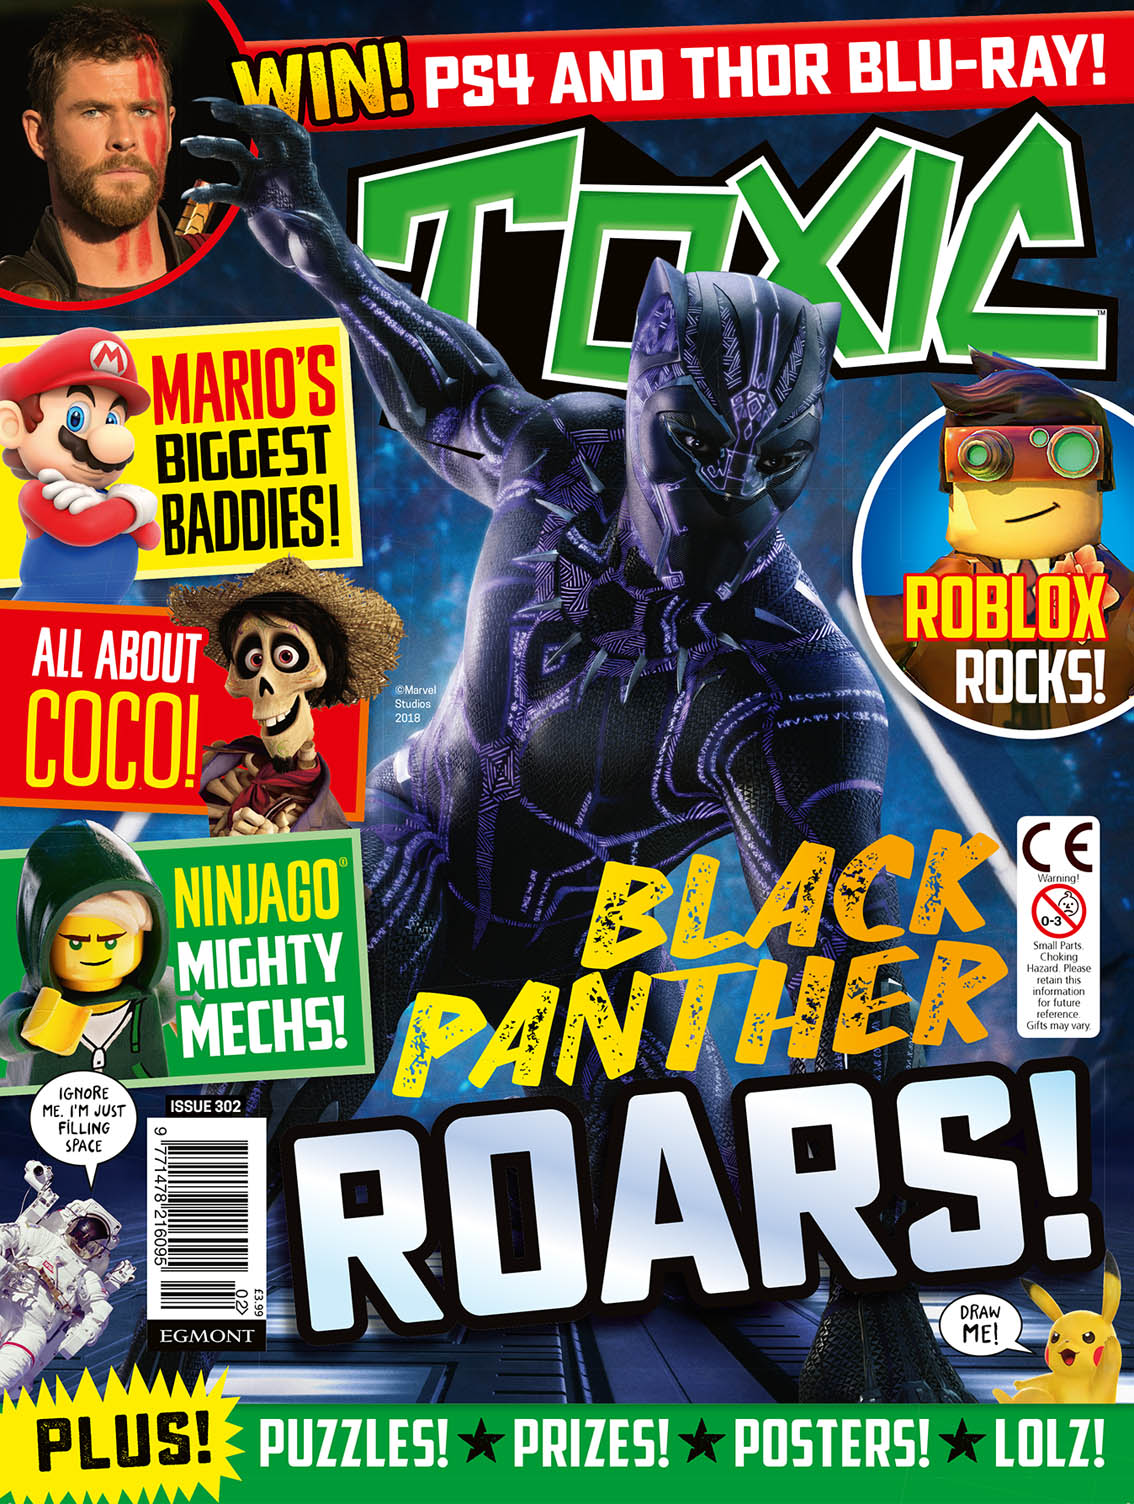 Blimey The Blog Of British Comics Toxic Gets A New Look